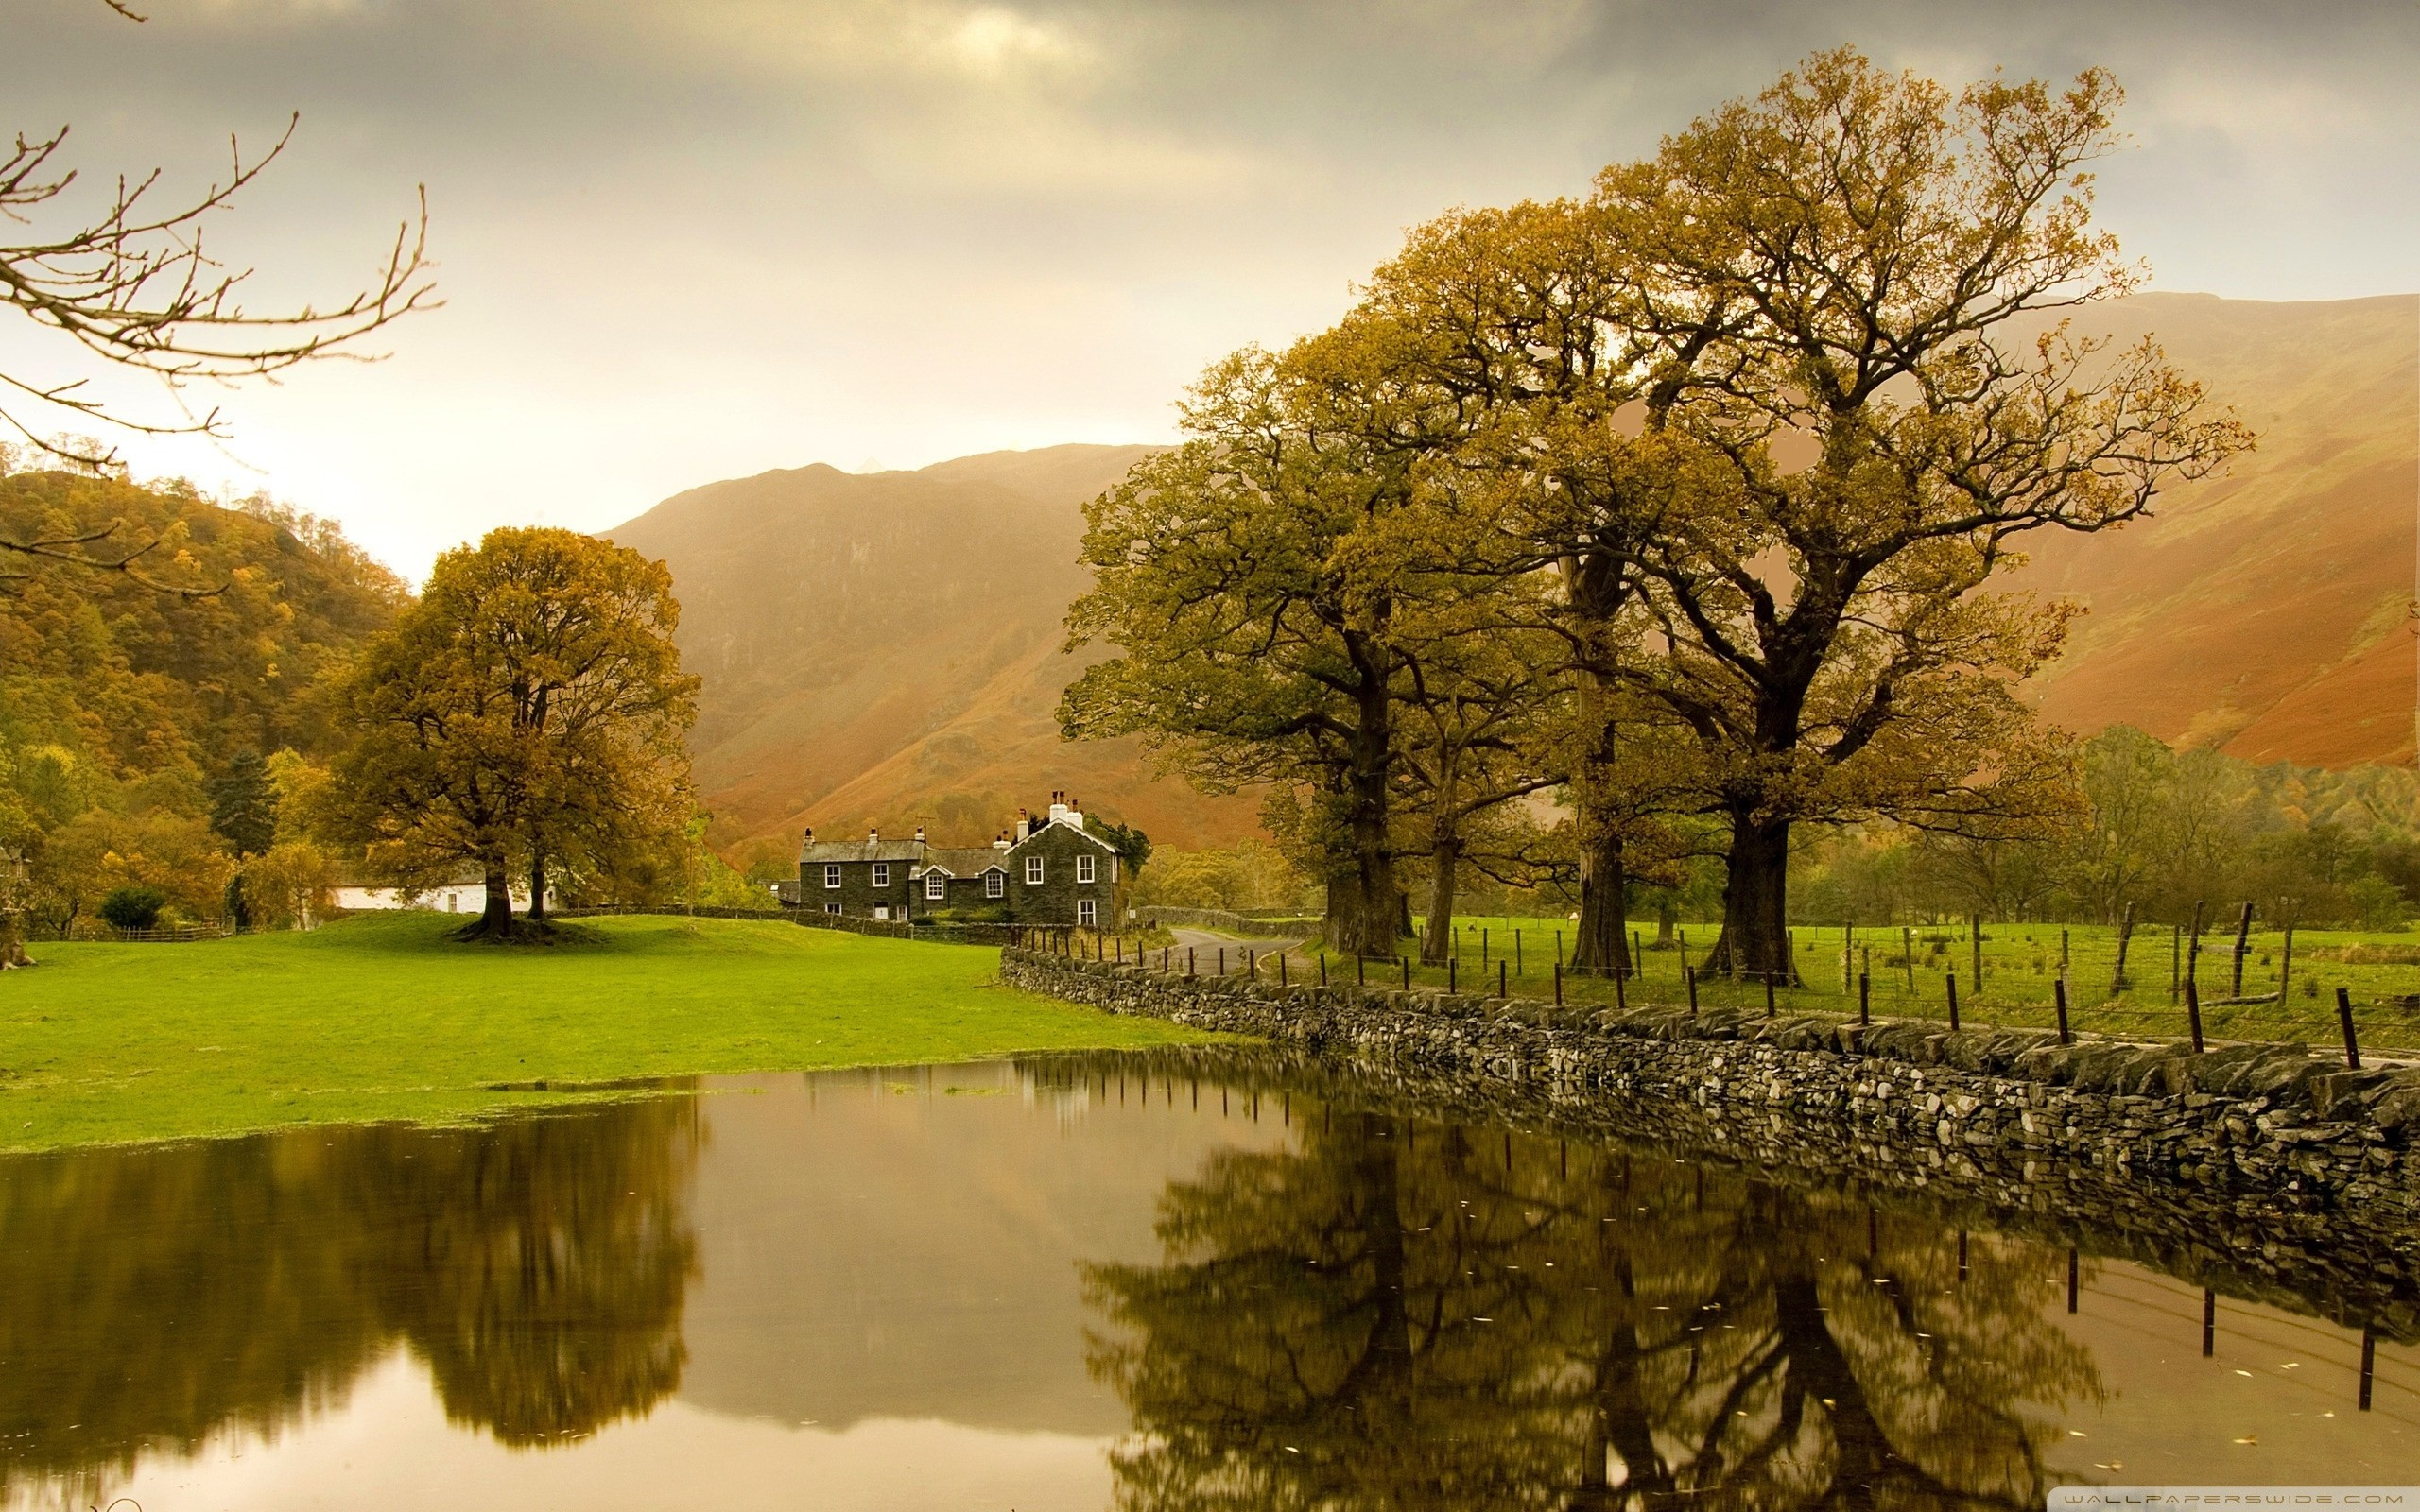 Country Scenery Wallpaper 61 images